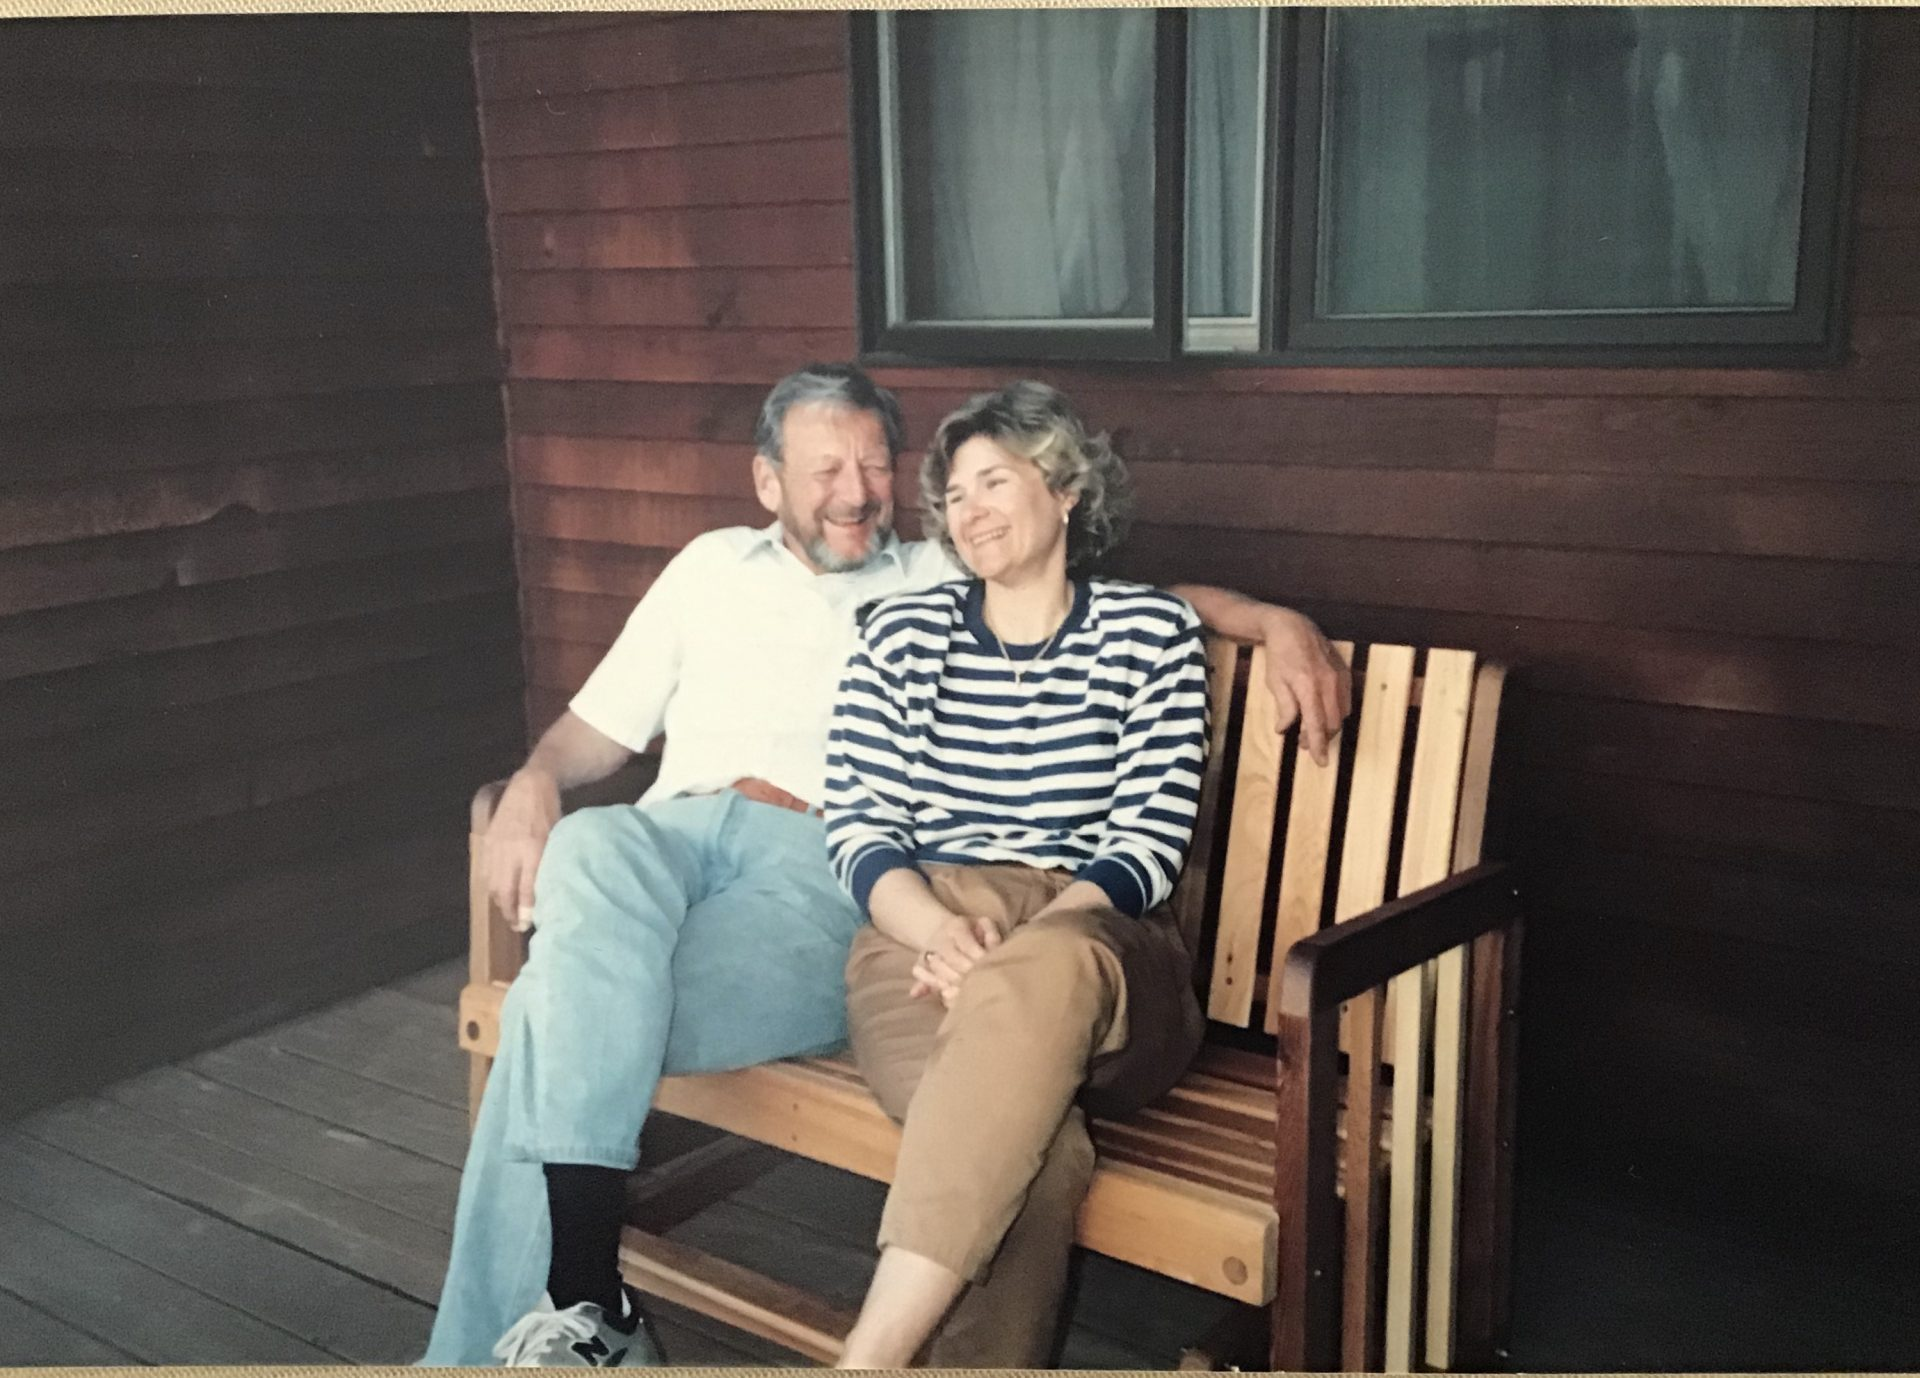 Joe and Gail, Stonington, CT, 1991.